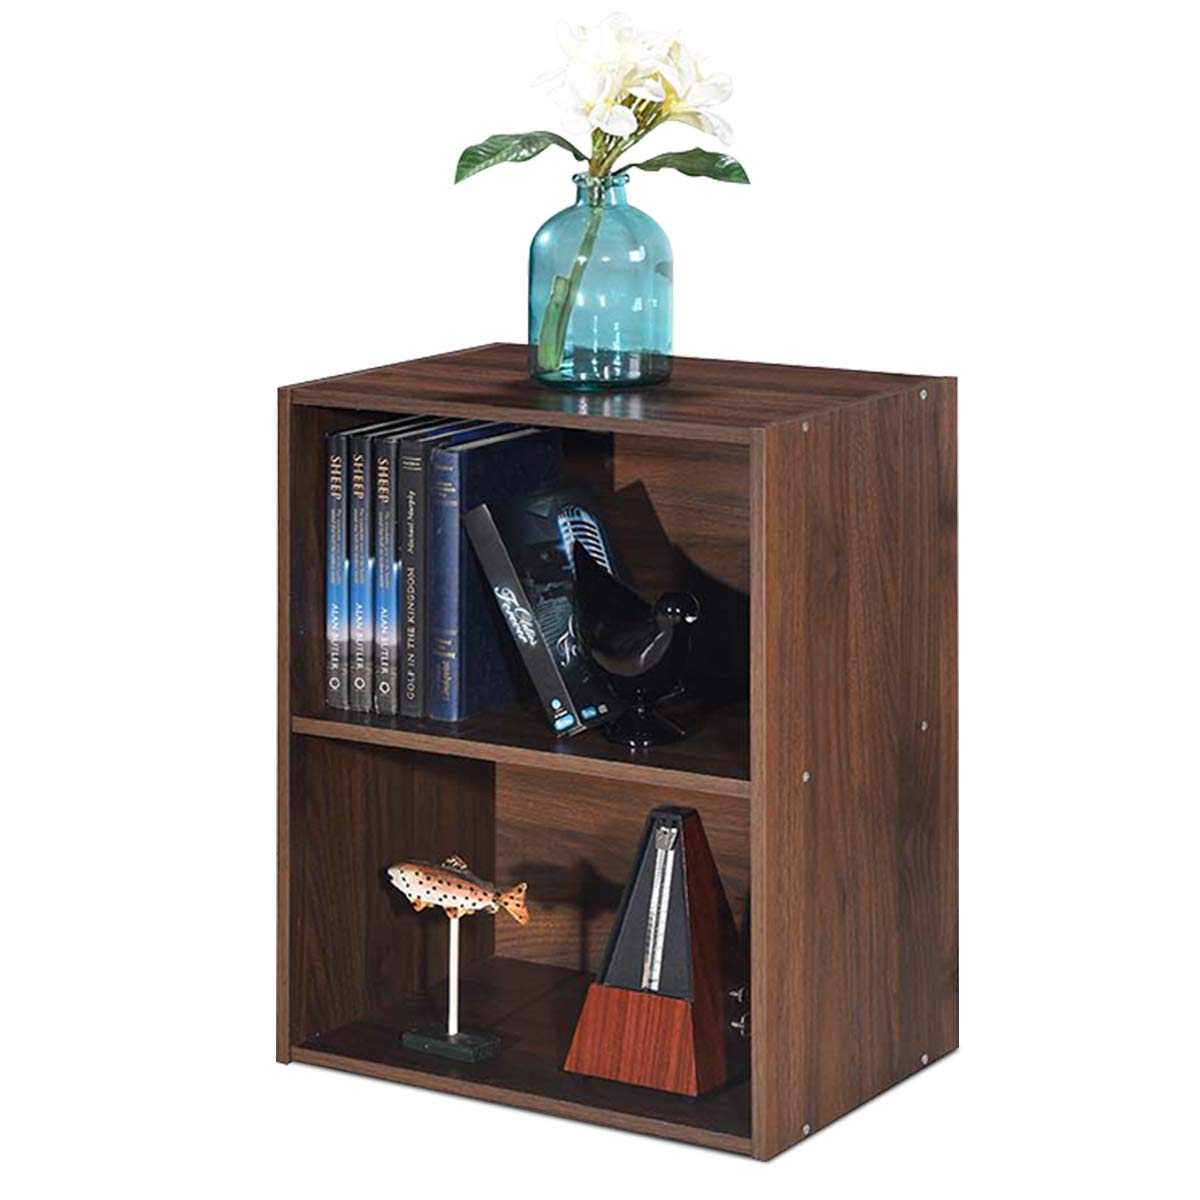 Giantex Bookshelf and Bookcase 2-Layer Storage Shelf, W Large-Capacity Open Storage Space, MDF P2 Veneer, for Living Room Bedroom Study Office Multi-Functional Furniture Display Cabinet Walnut, 1